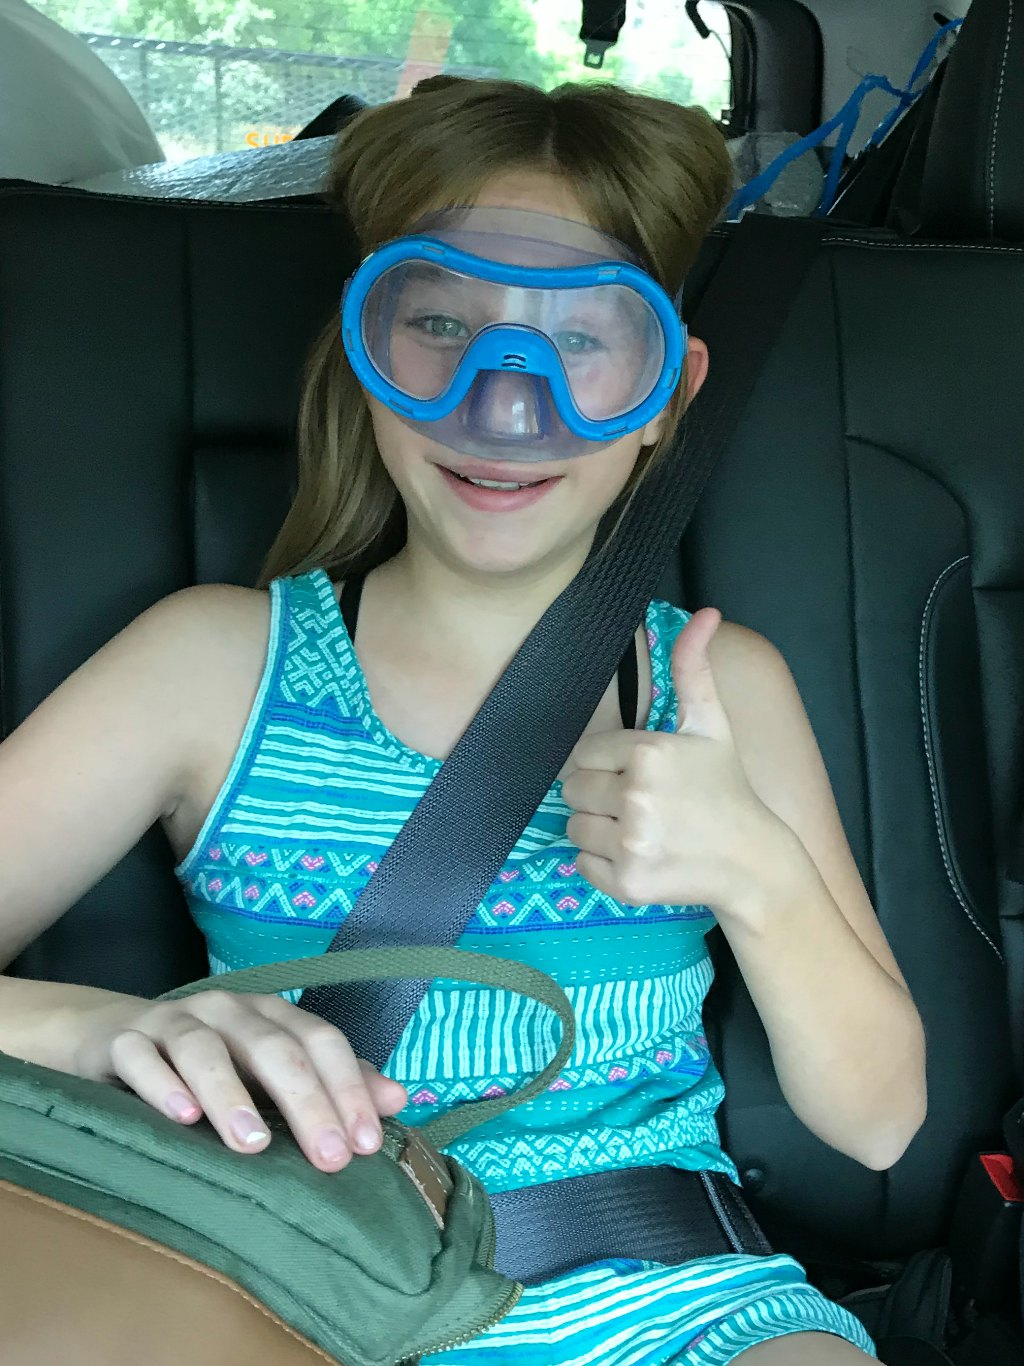 Girl wearing swim goggles in the car